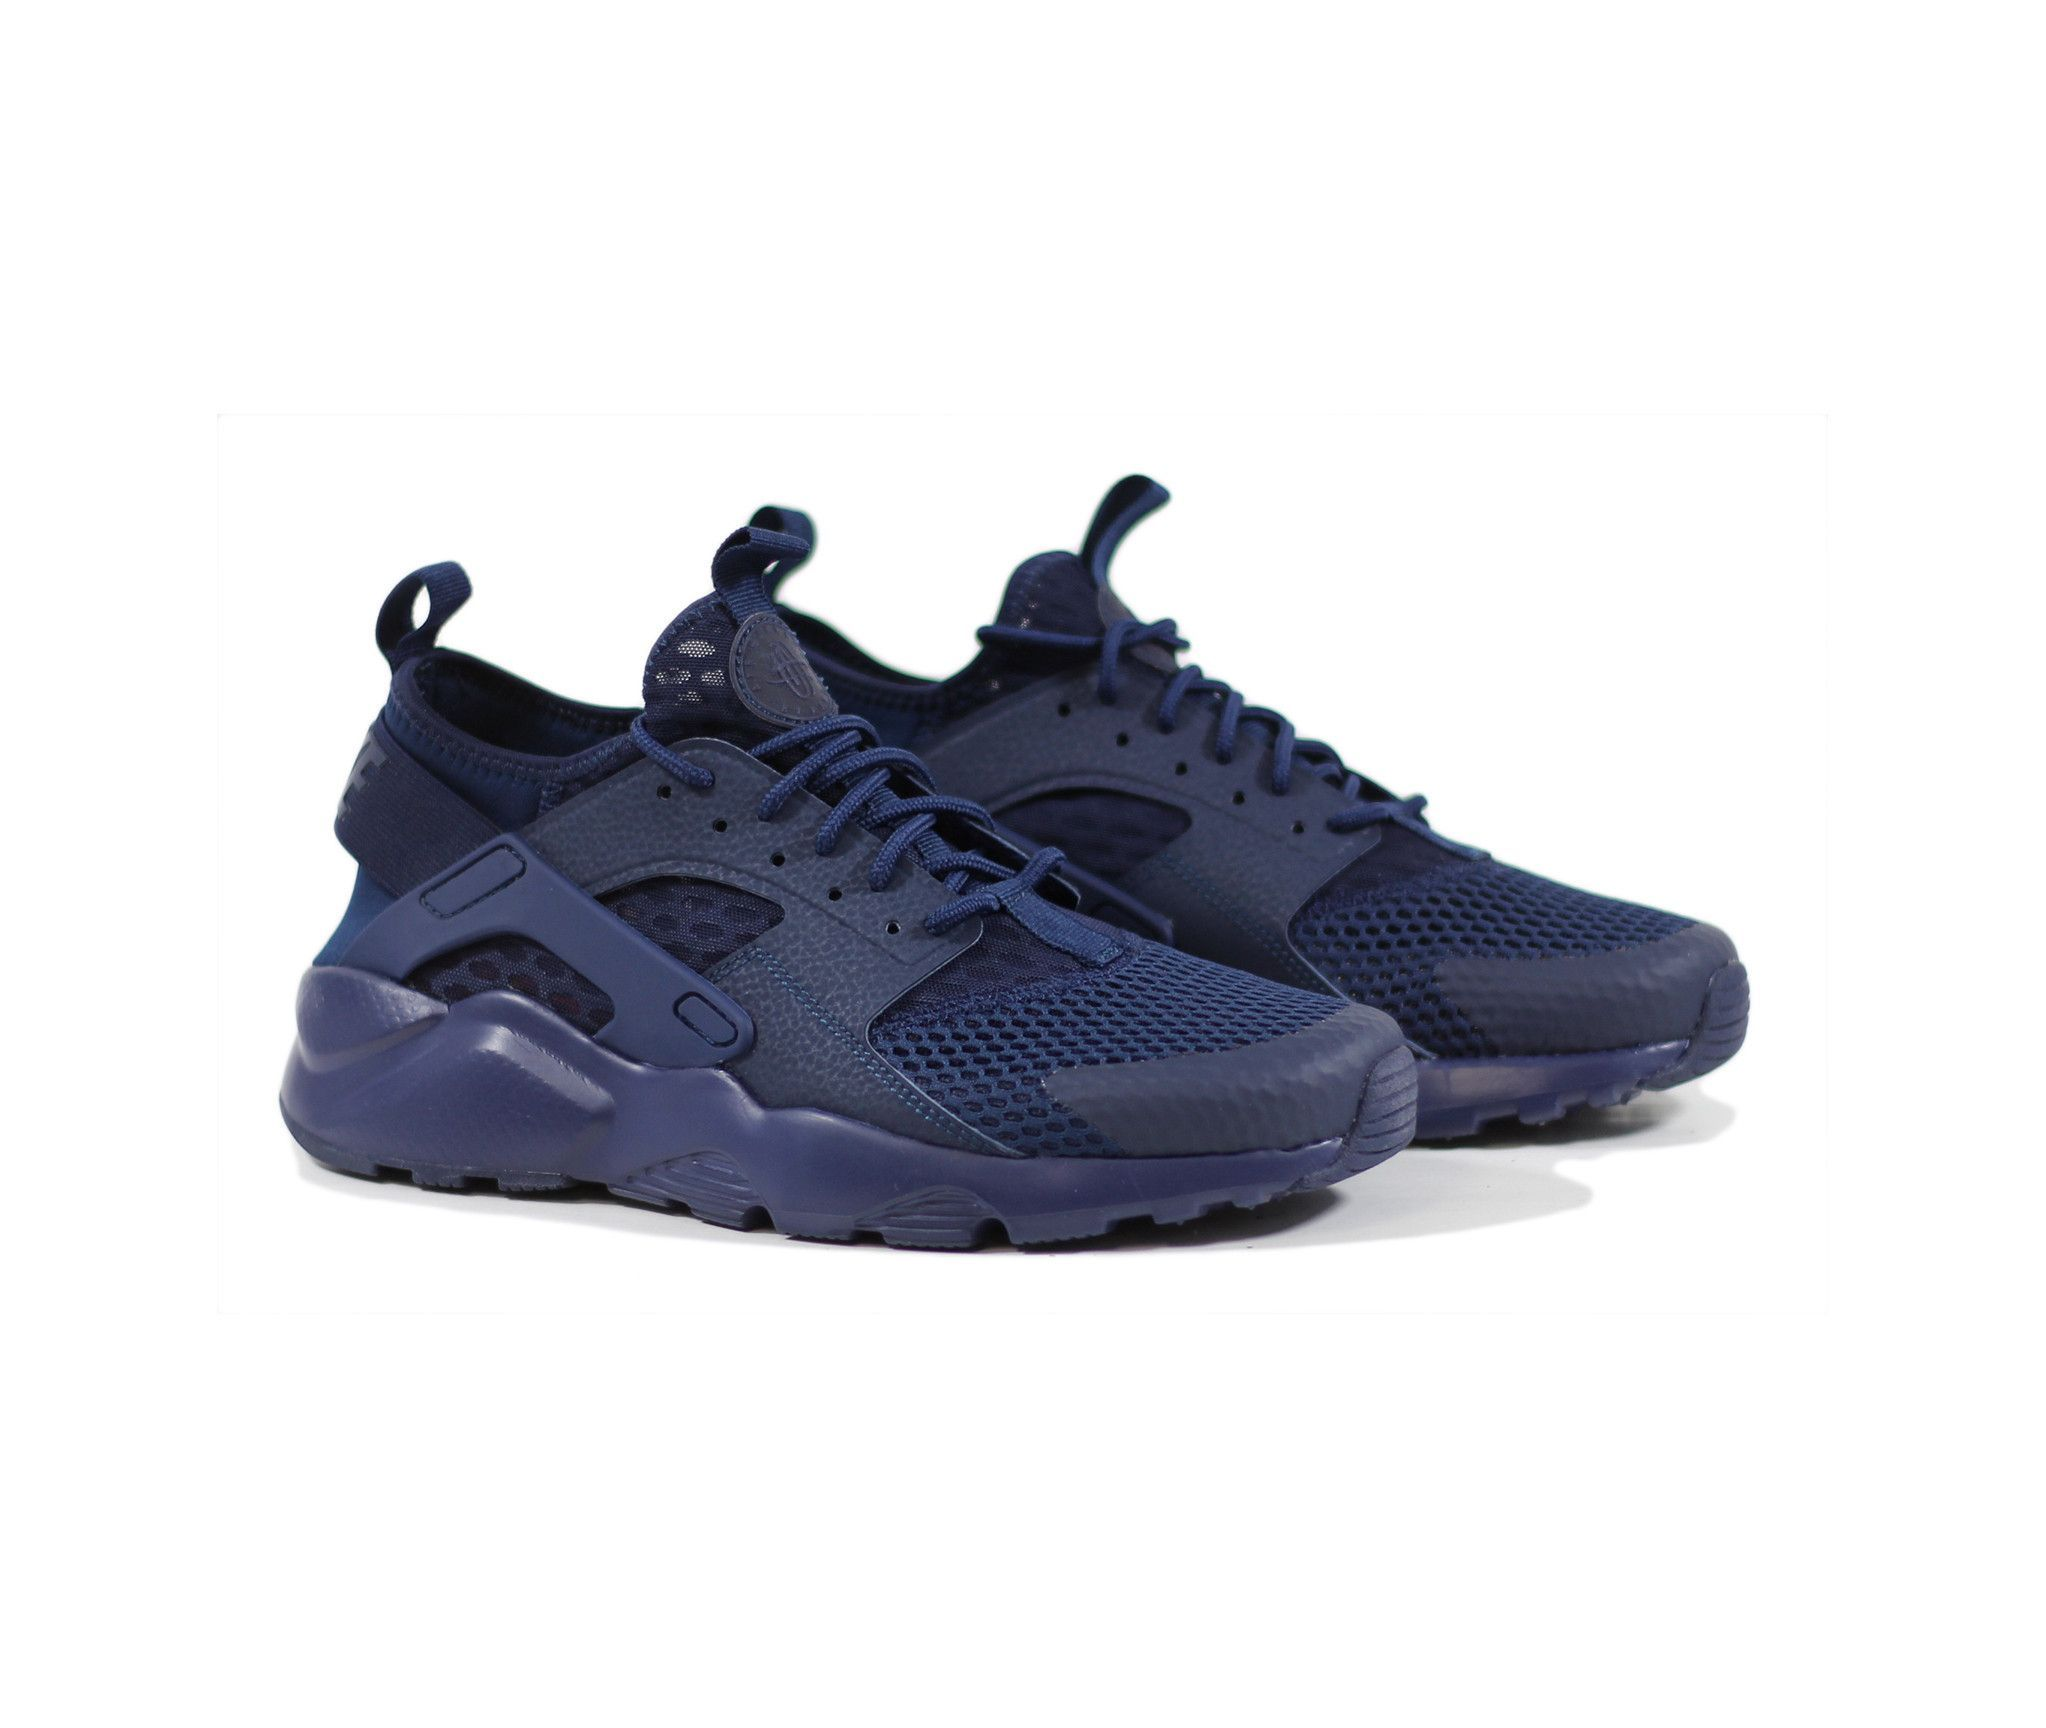 3694c7fe672 ... discount code for nike air huarache run ultra breeze midnight navy  midnight navy 2c3eb cf432